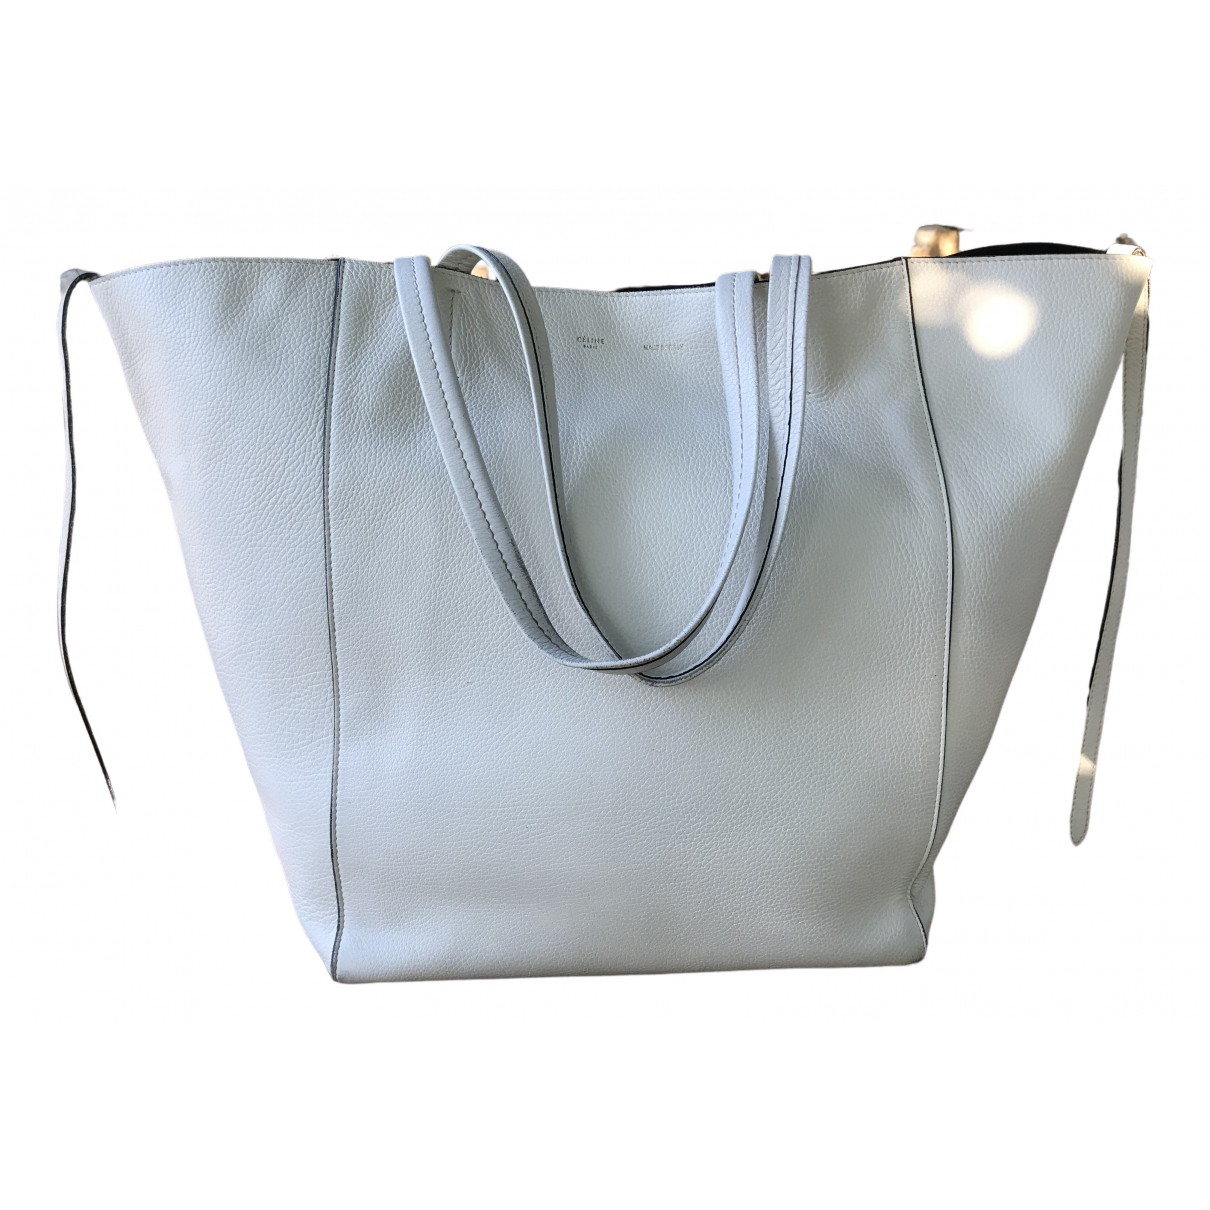 Celine Luggage Phantom Handtasche in  Weiss Leder